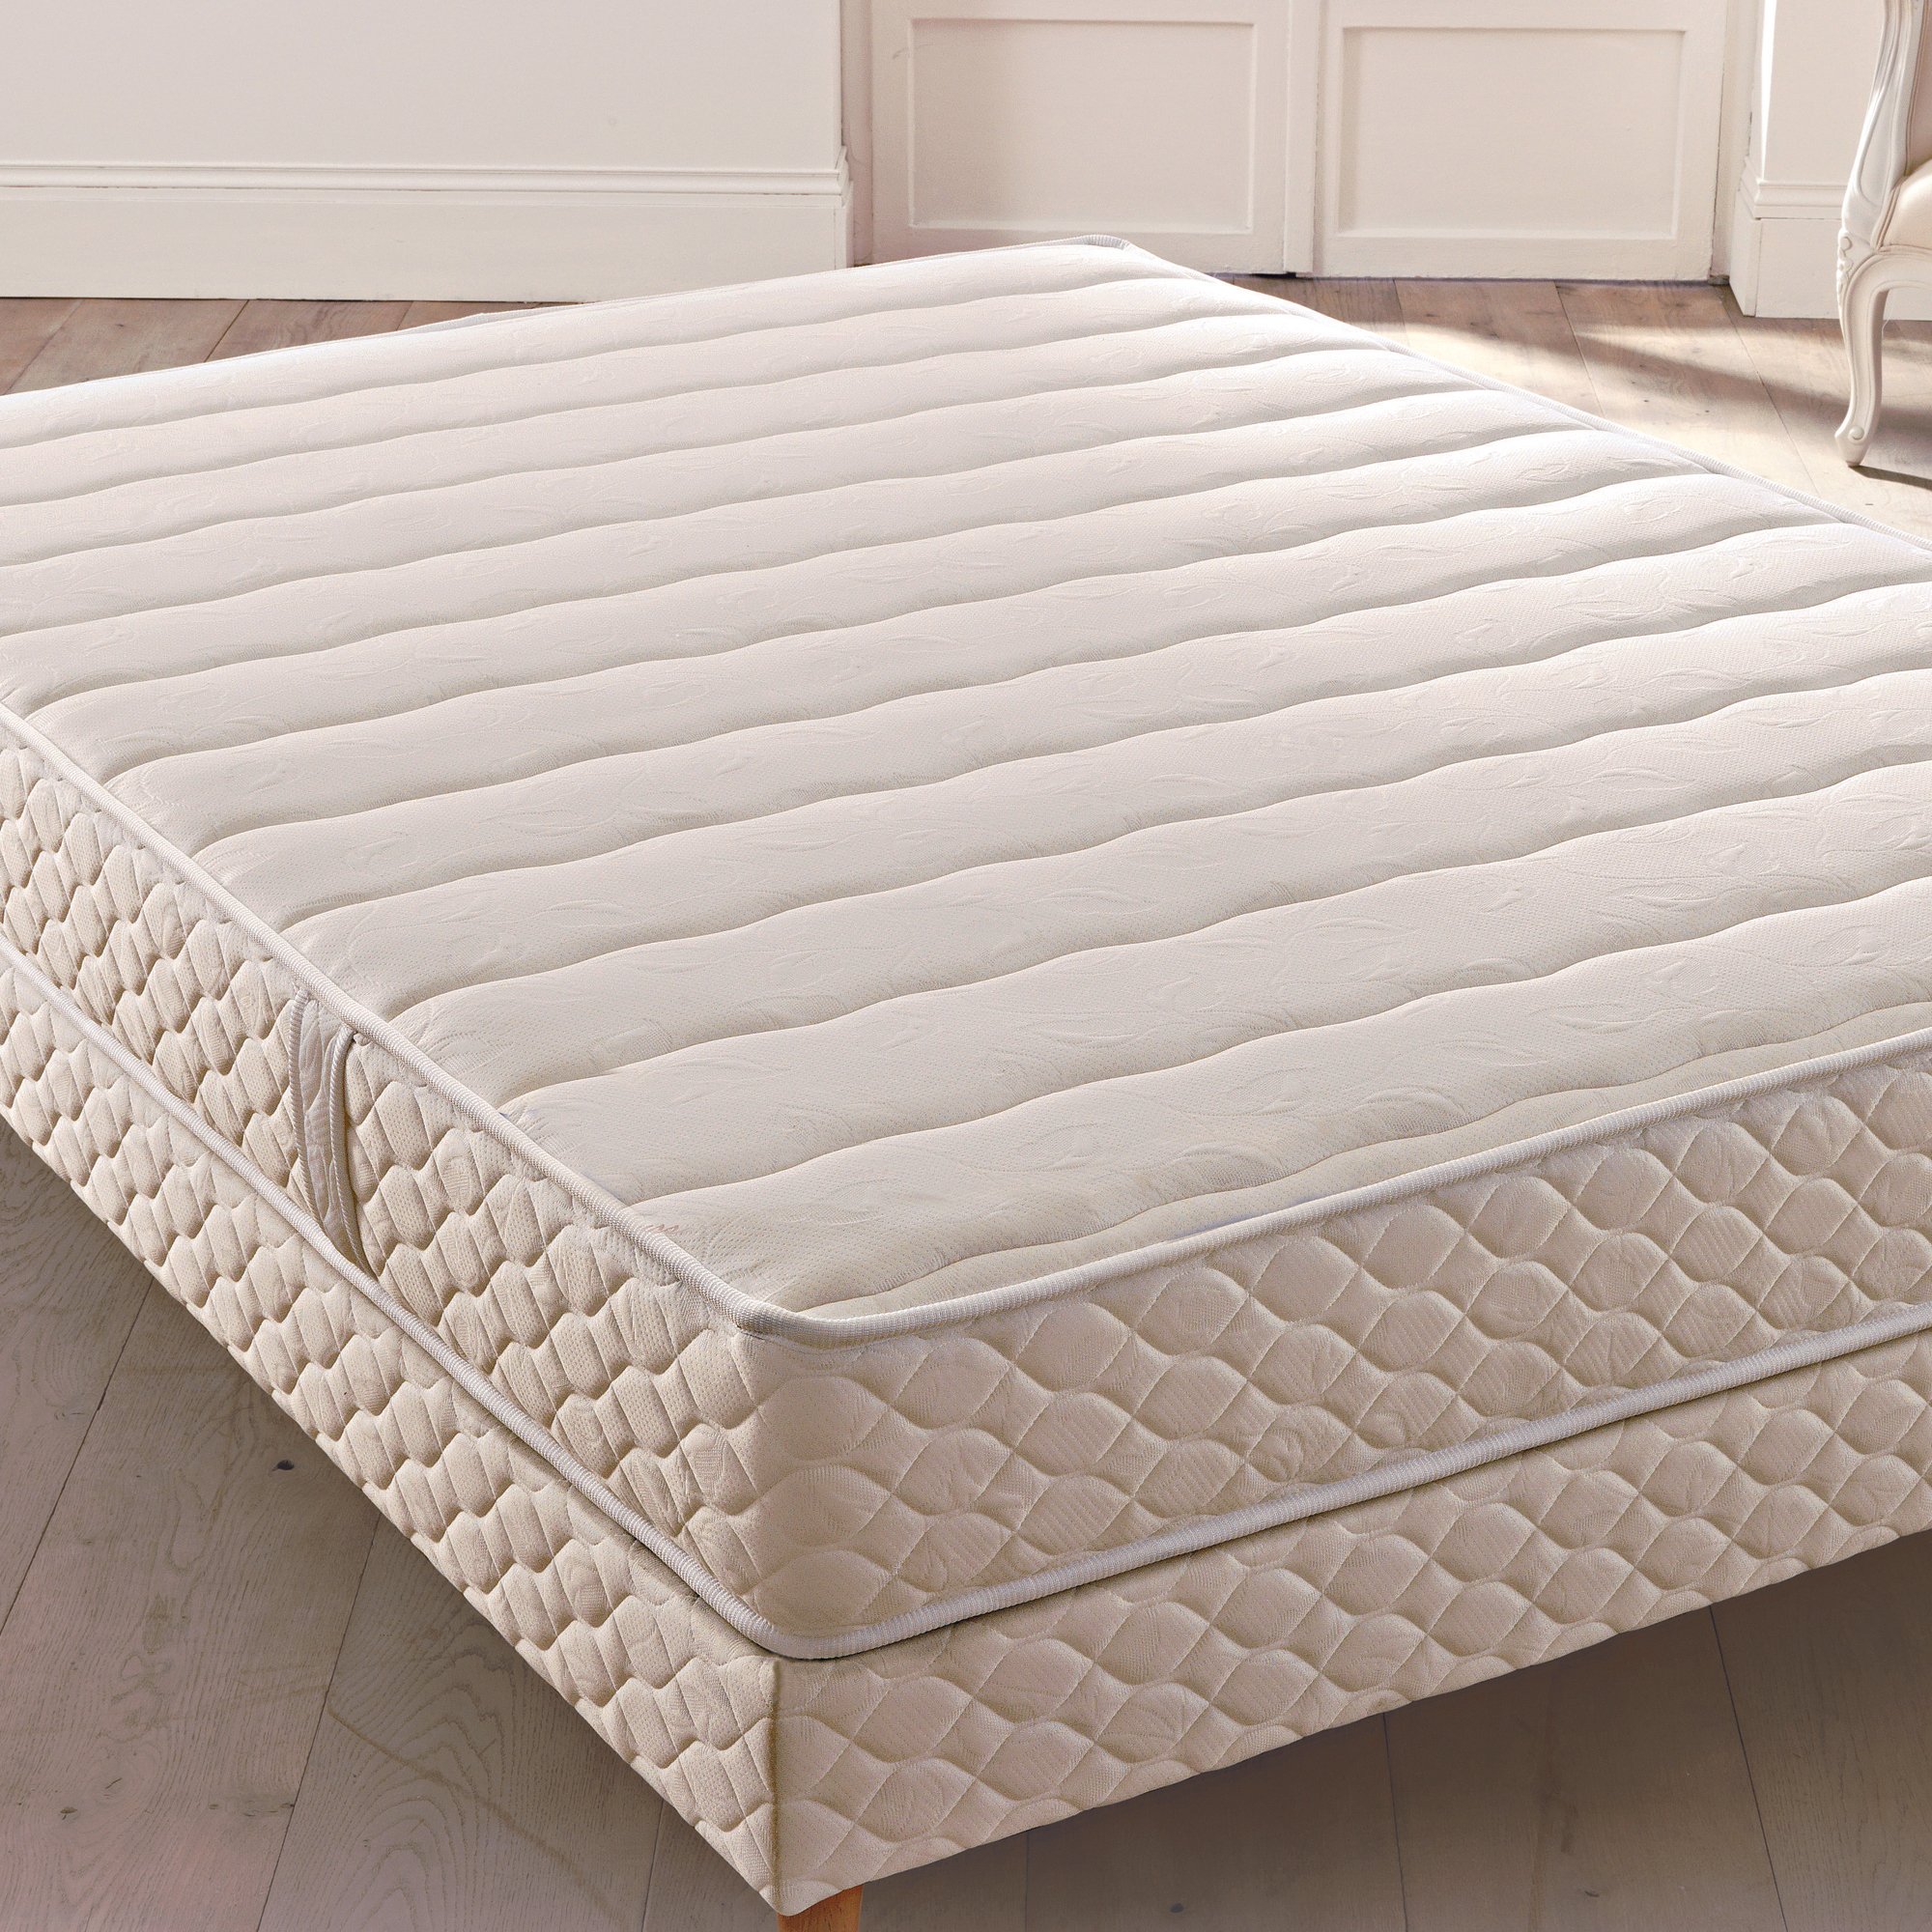 matelas mousse accueil grand confort soutien ferme 5 zones dormance 160 x 200 anniversaire. Black Bedroom Furniture Sets. Home Design Ideas